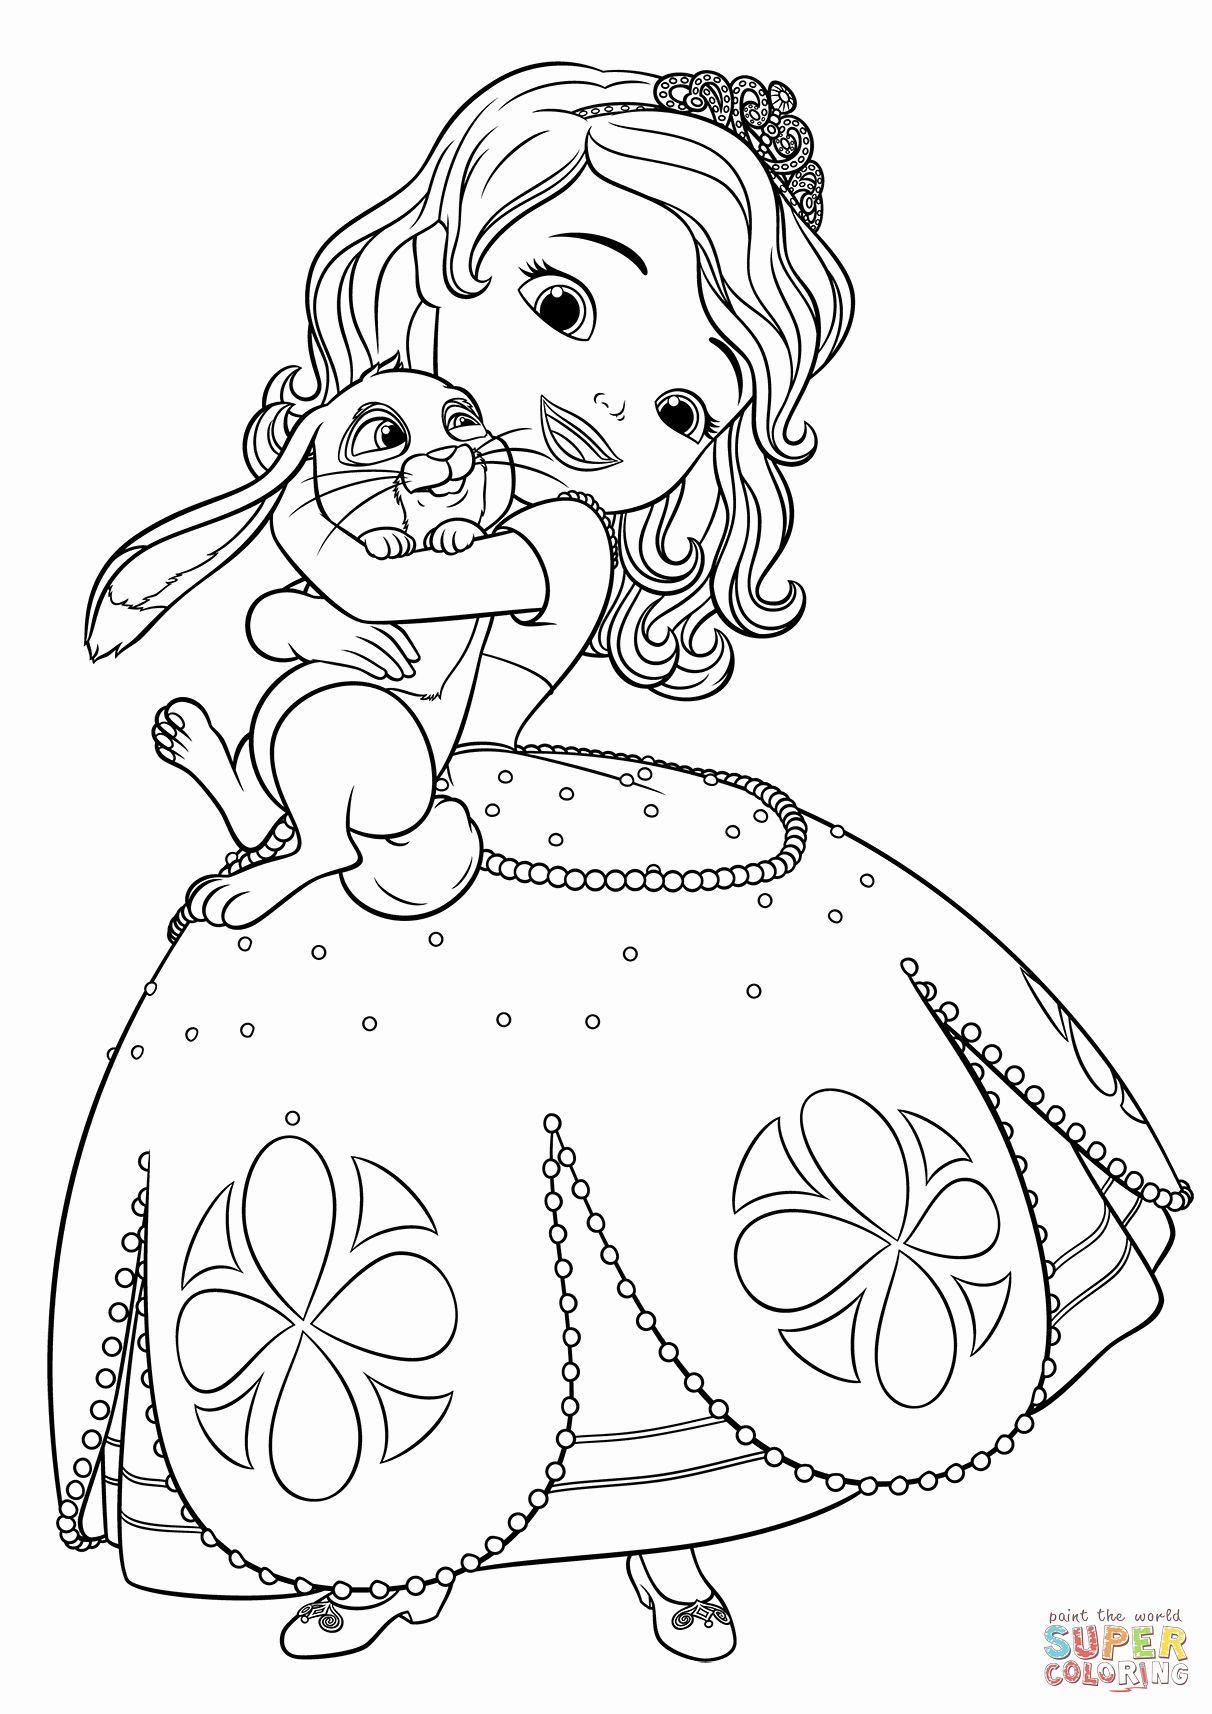 Sofia The First Coloring Unique Sofia And Clover Coloring Page Rapunzel Coloring Pages Disney Coloring Pages Ariel Coloring Pages